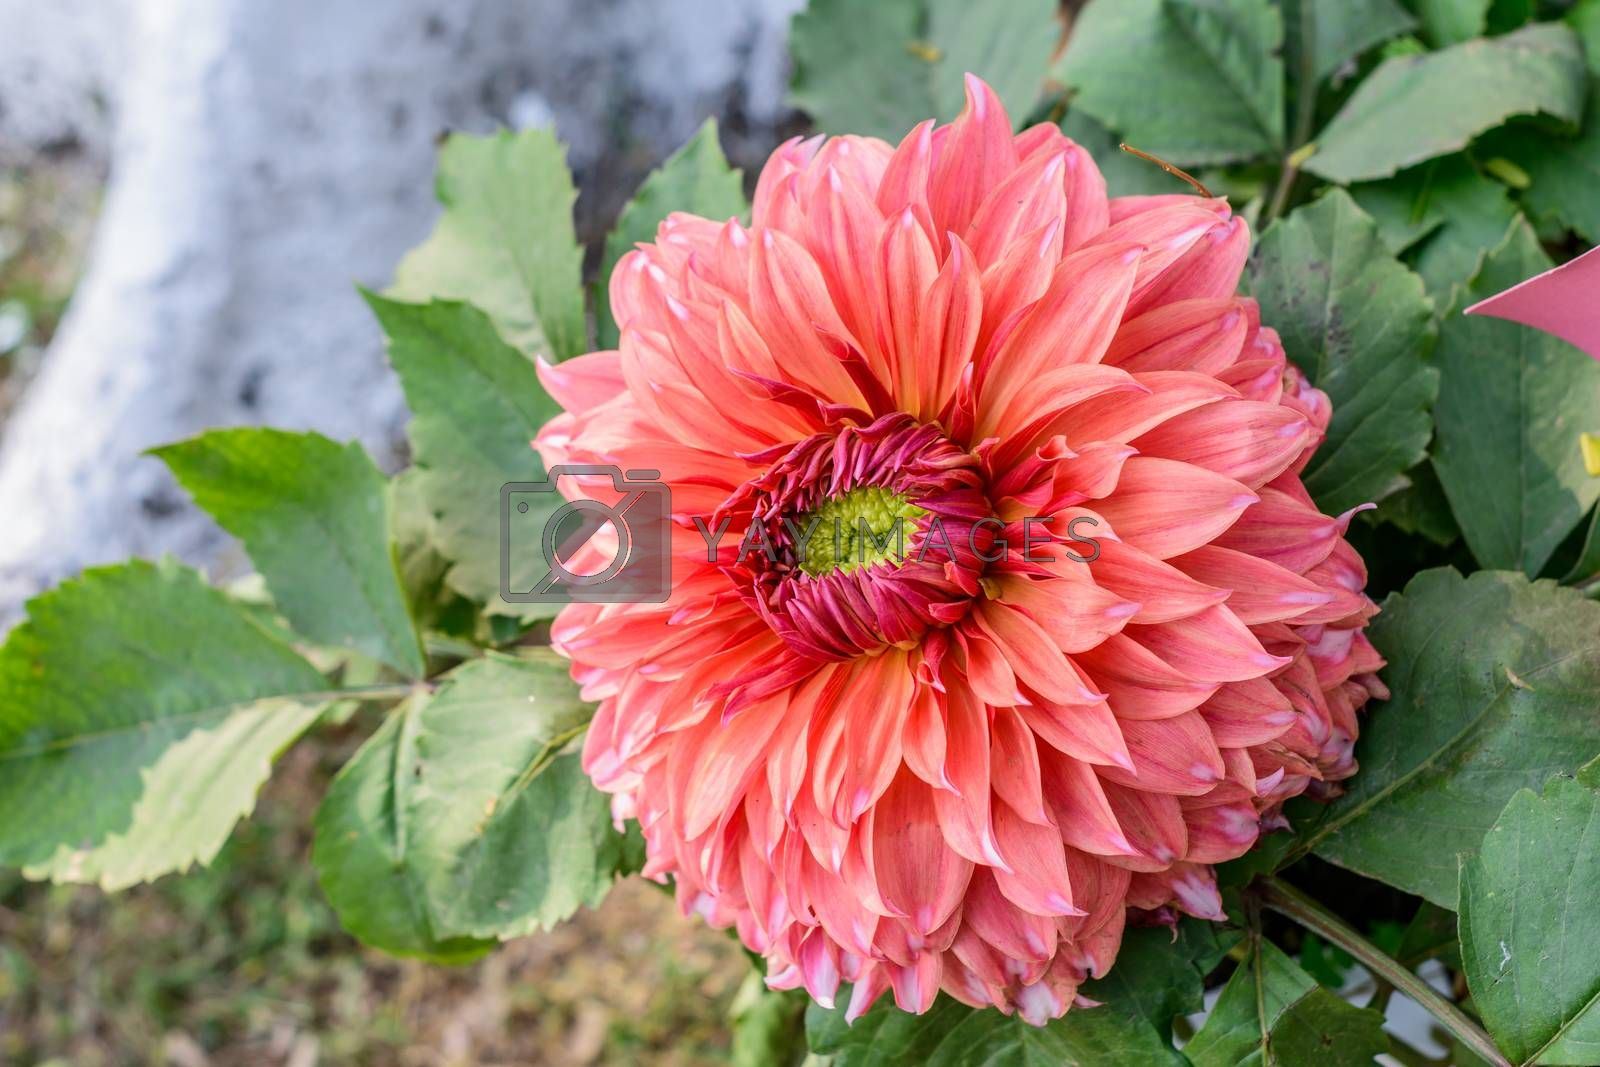 Zinnia flower plant blooming in field. It is a genus of sunflower tribe of daisy family. It is a sun loving plant Blooms in early spring to late summer. A very popular flower for gardens and bouquets.